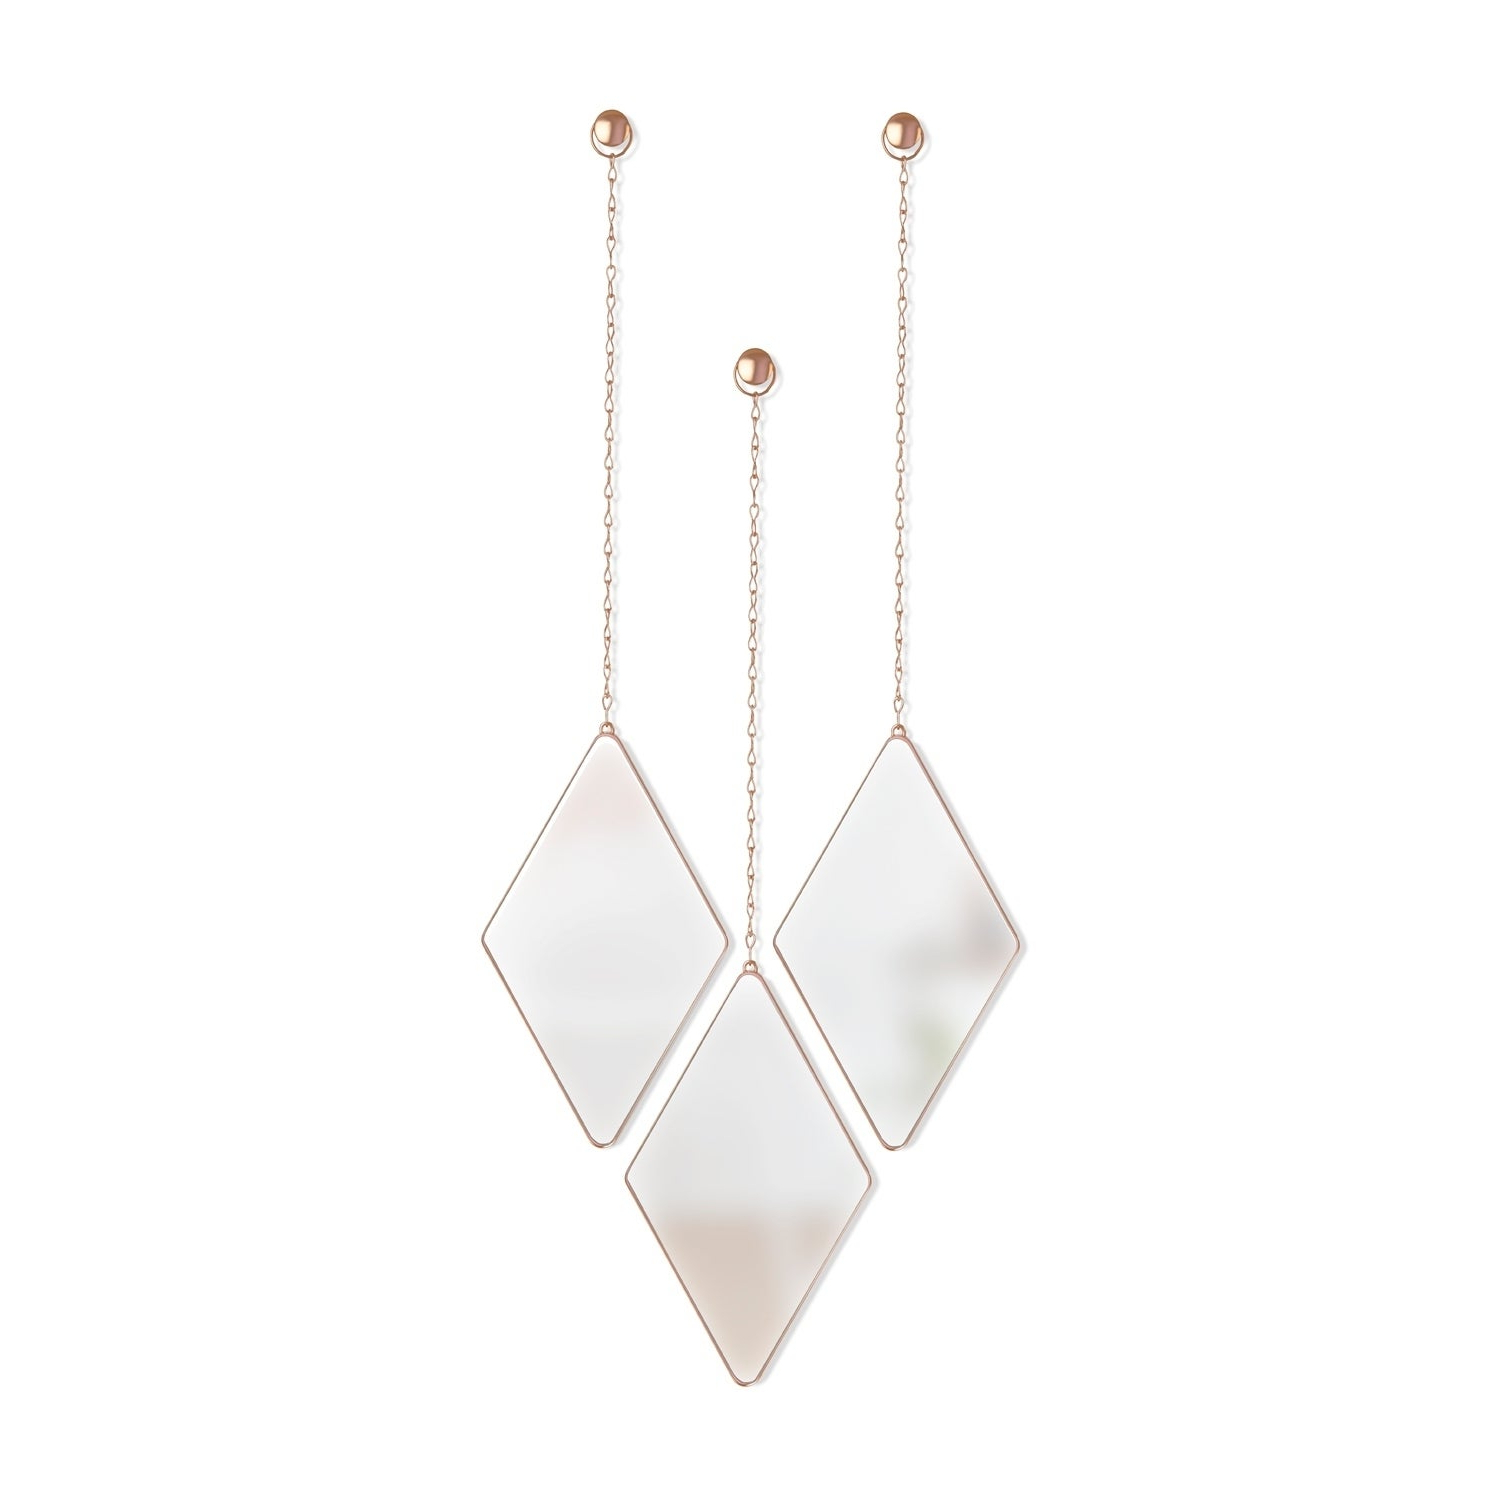 3 Piece Dima Hanging Modern & Contemporary Mirror Sets Intended For Current Umbra Dima Mirror (Set Of 3) (Gallery 10 of 20)